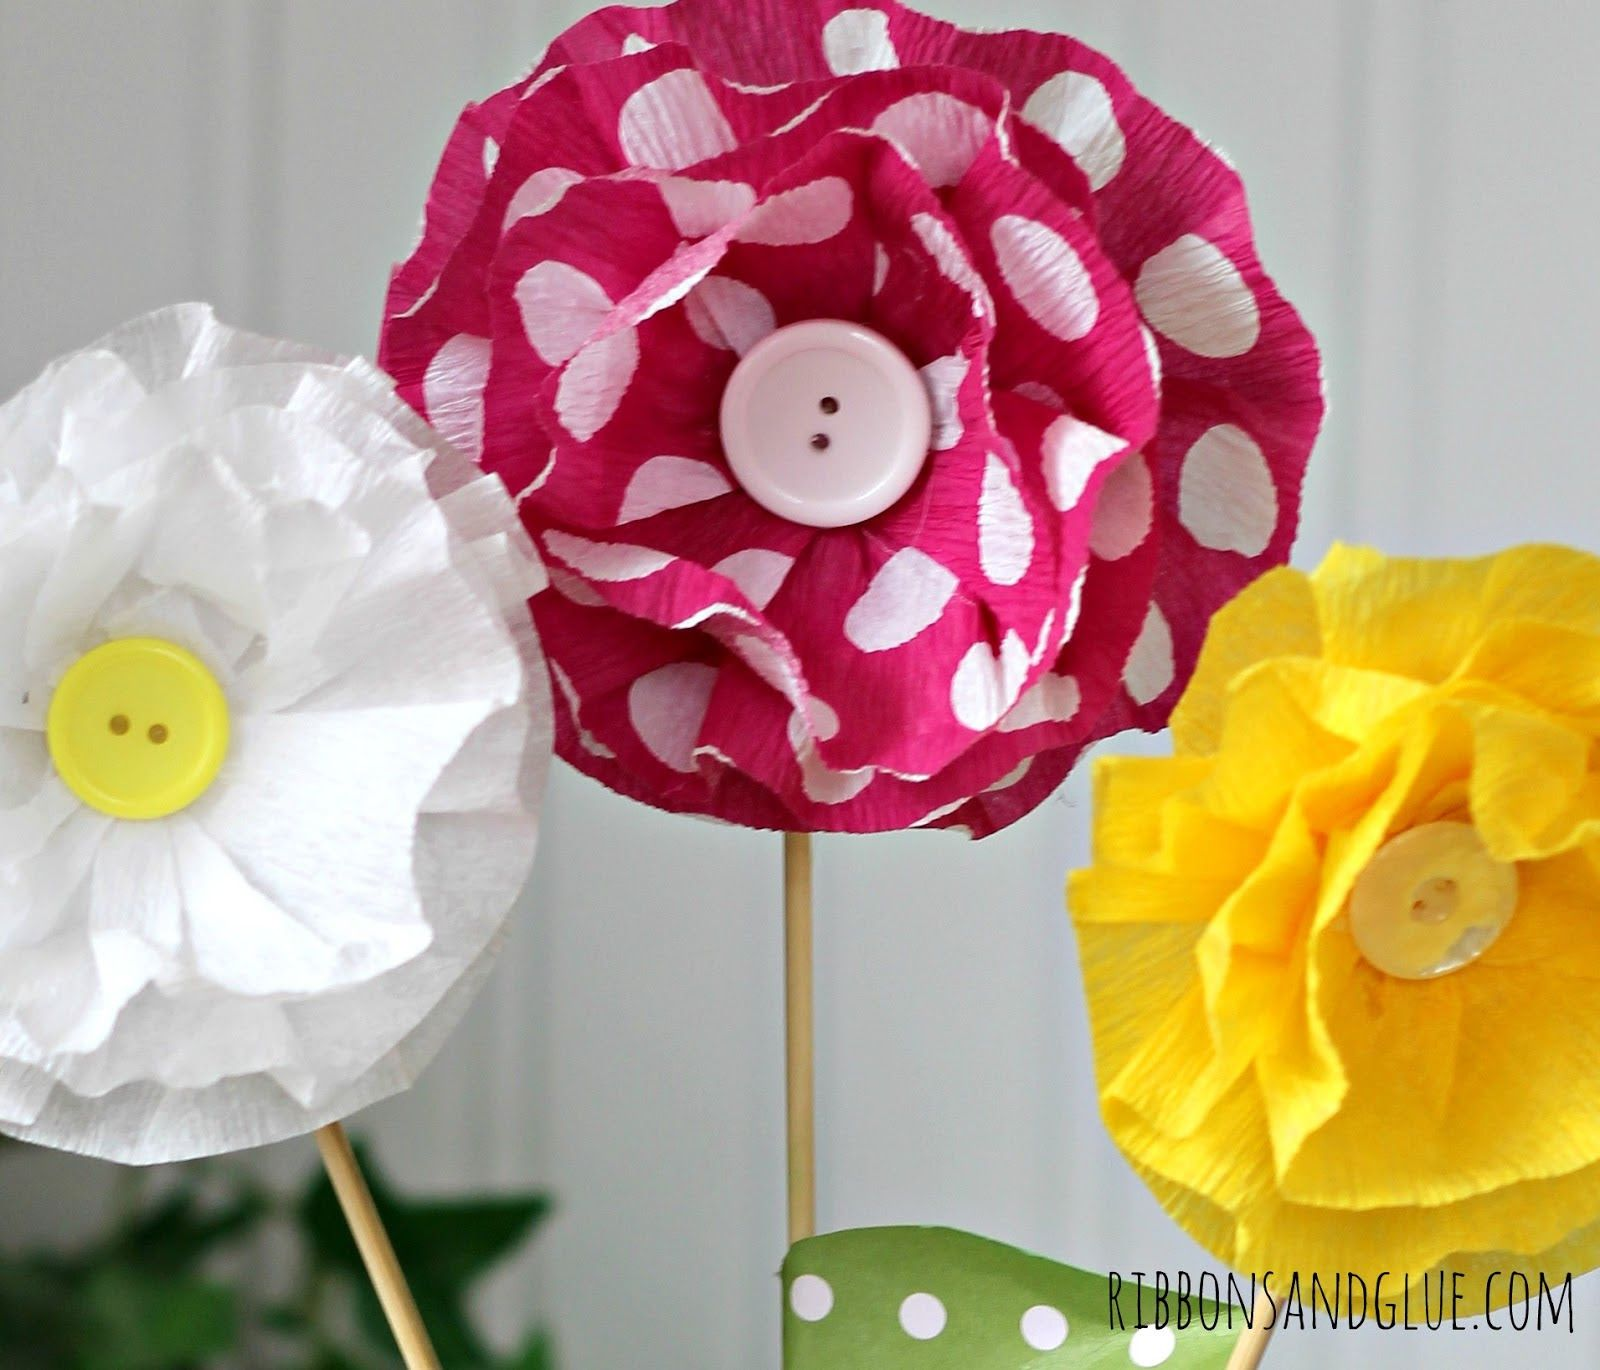 How to make crepe paper flowers paper flora pinterest crepe learn how to make crepe paper flowers with this step by step tutorial and supply list its easy when you have photos to show you how mightylinksfo